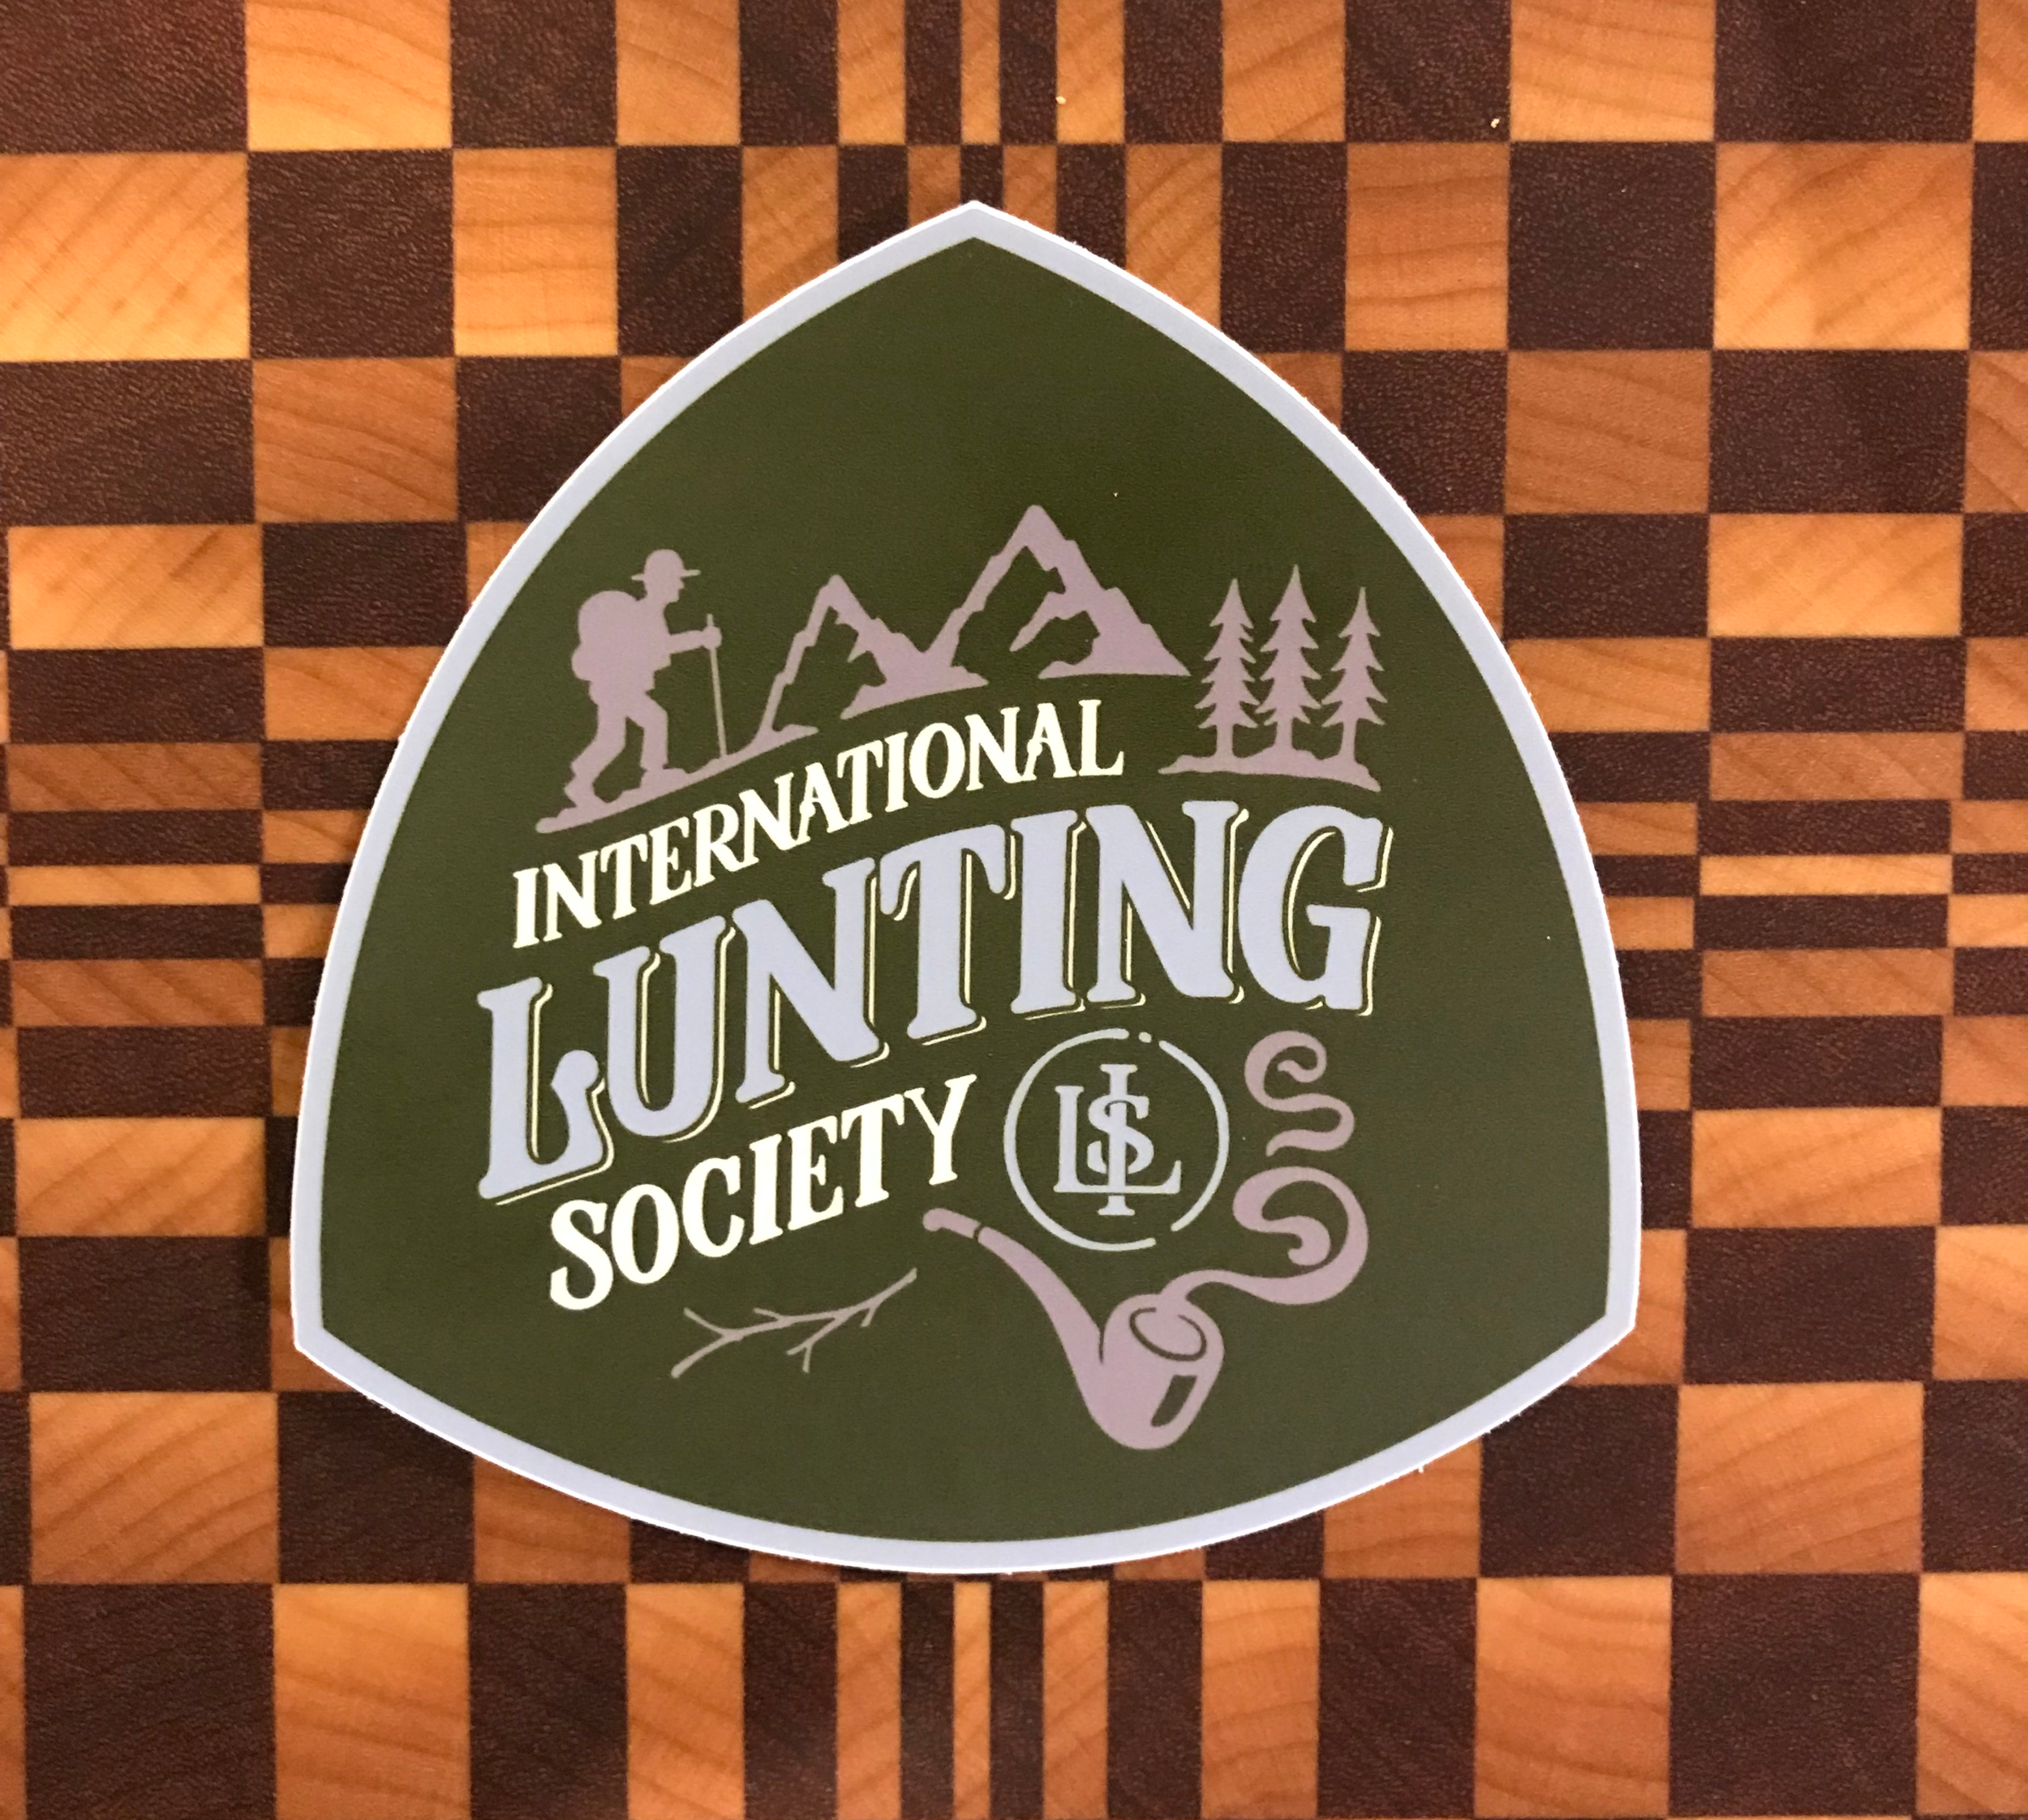 Society Collectible Sticker - $3.00 each (Free when you join at the Lunter level)